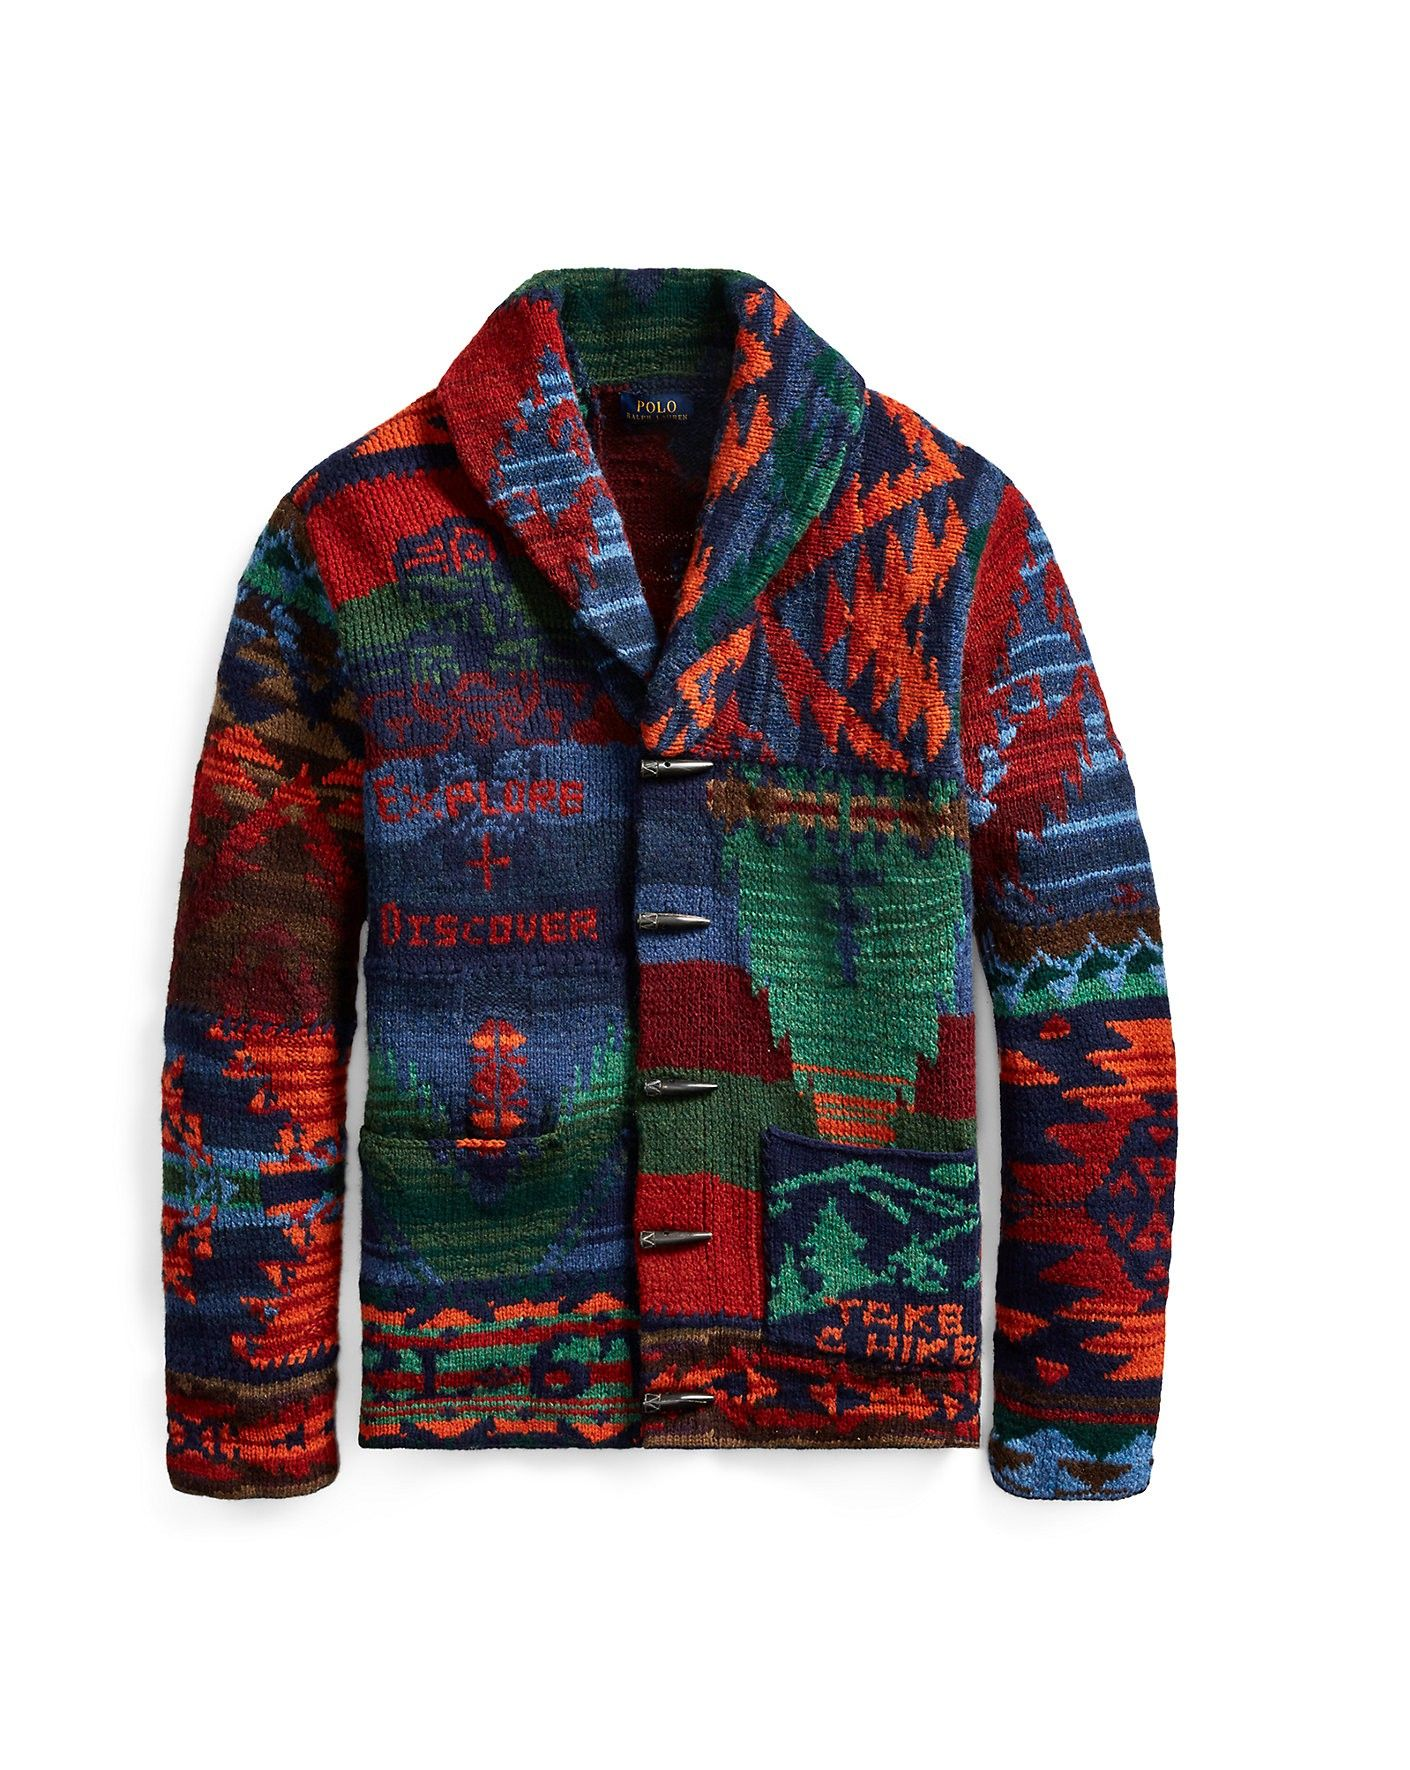 ff8c46862dc5c RALPH LAUREN Polo Ralph Lauren The Iconic Patchwork Cardigan.  ralphlauren   cloth